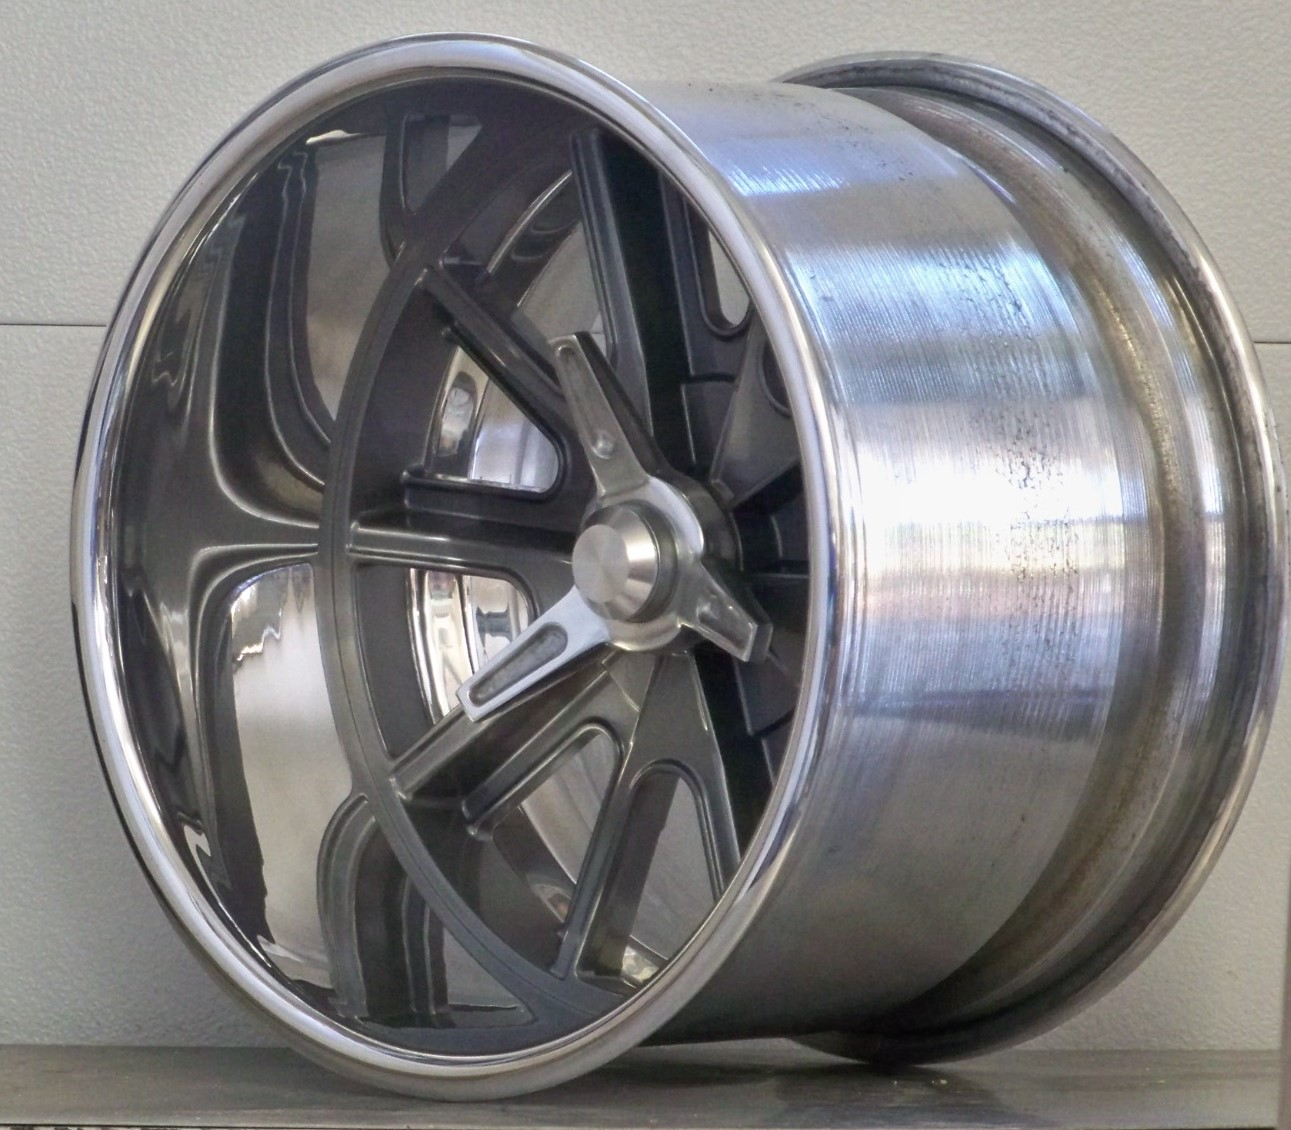 407 PIN DRIVE WHEELS 18 inch